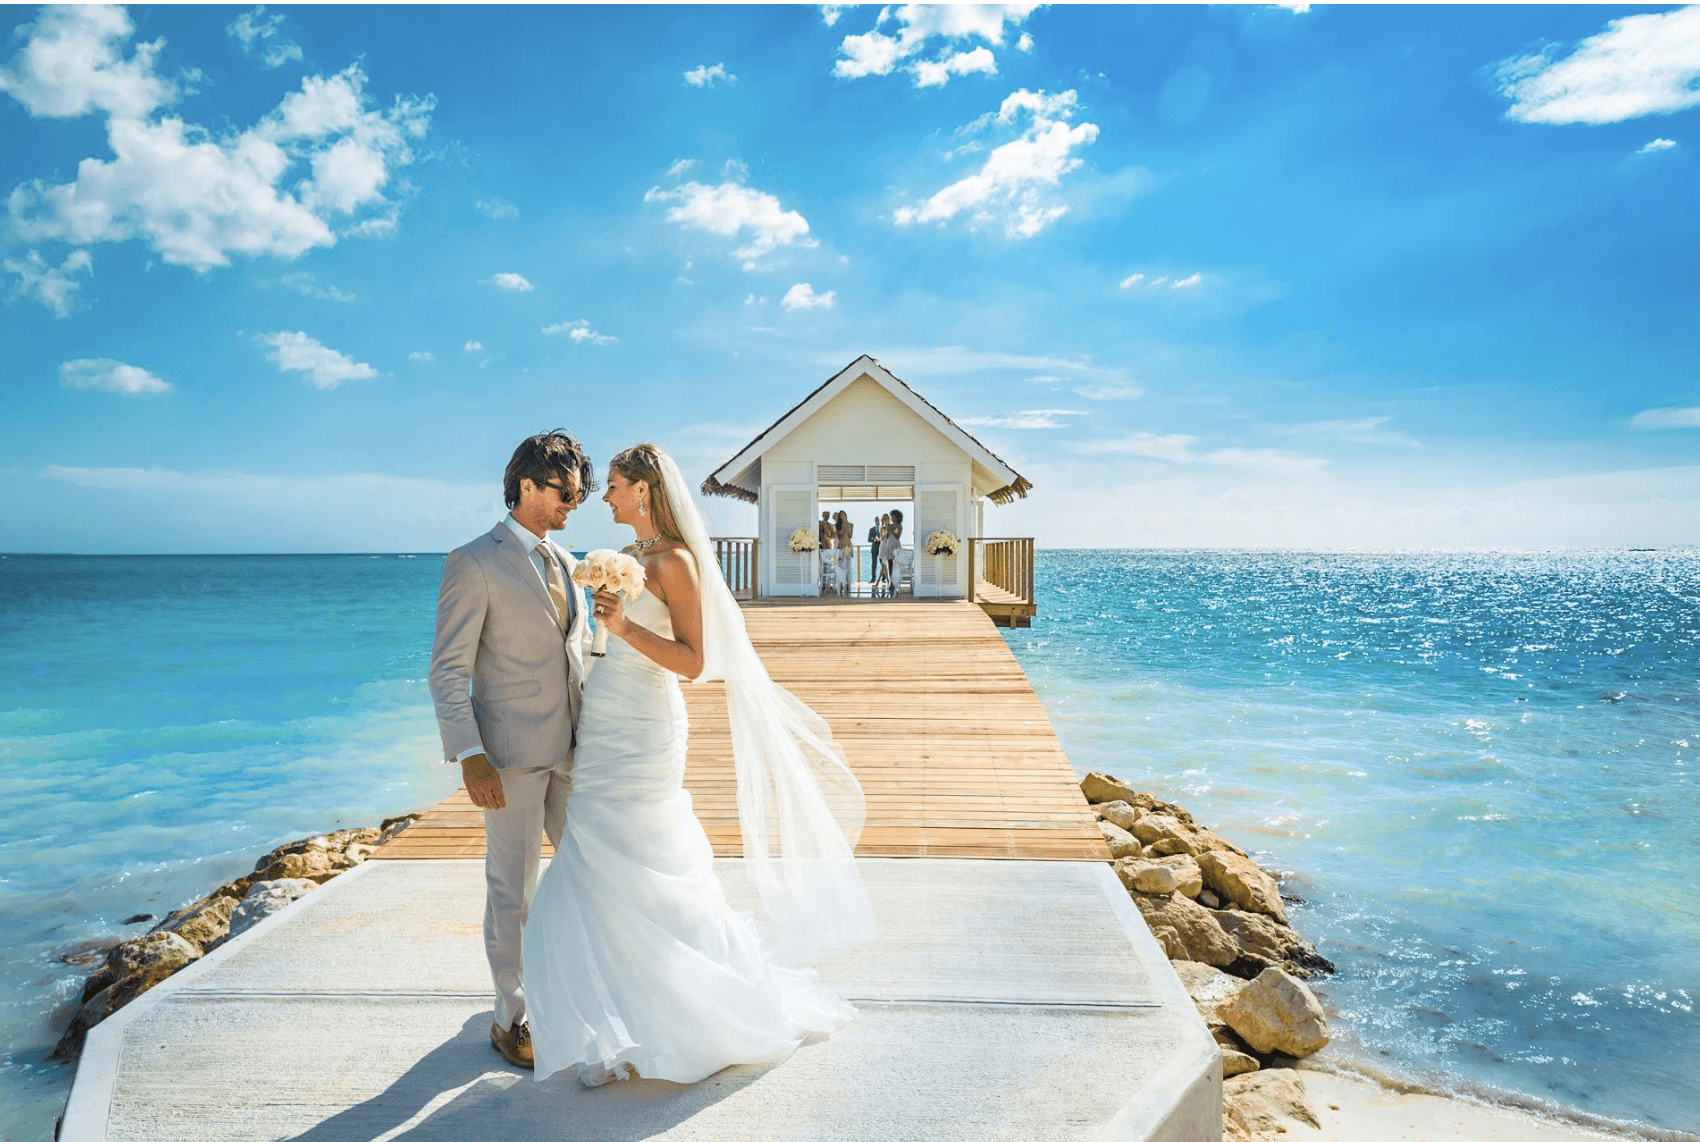 Bride and Groom stand on a pier with a chapel overlooking the clear blue ocean